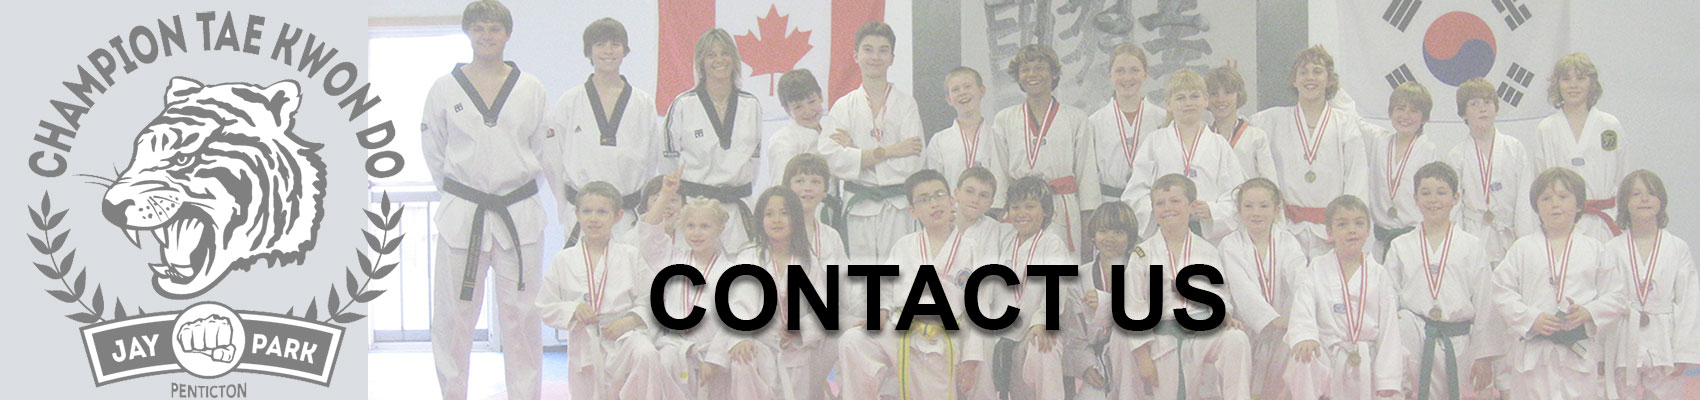 Contact Champion Taekwondo Penticton, formerly known as Valleywide Taekwondo